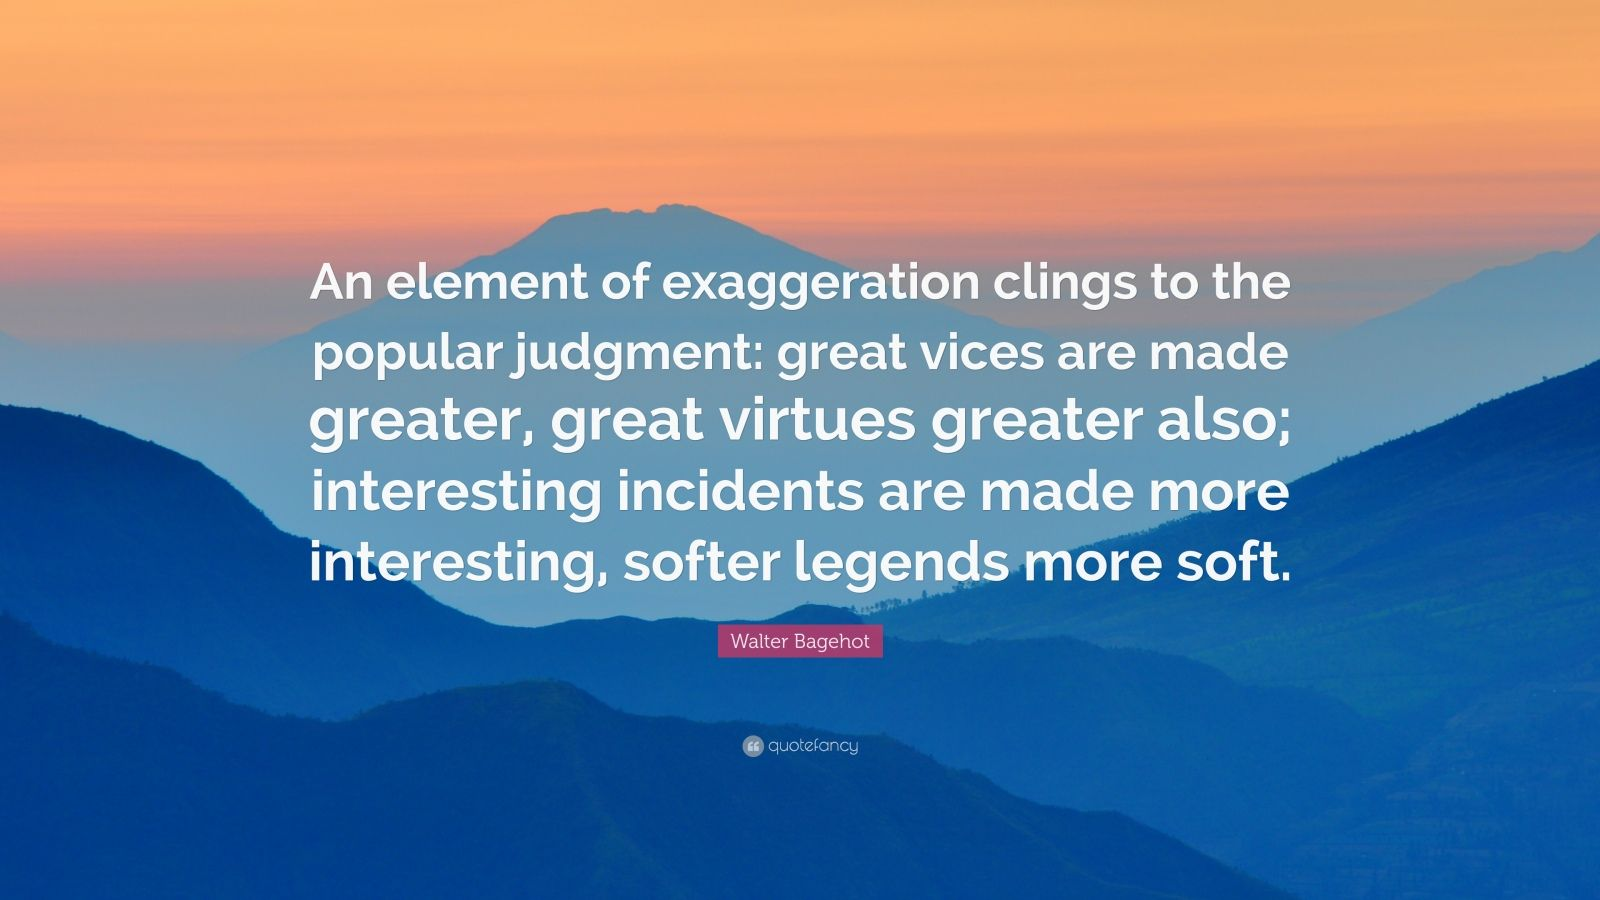 """Walter Bagehot Quote: """"An element of exaggeration clings to the popular judgment: great vices are made greater, great virtues greater also; interesting incidents are made more interesting, softer legends more soft."""""""